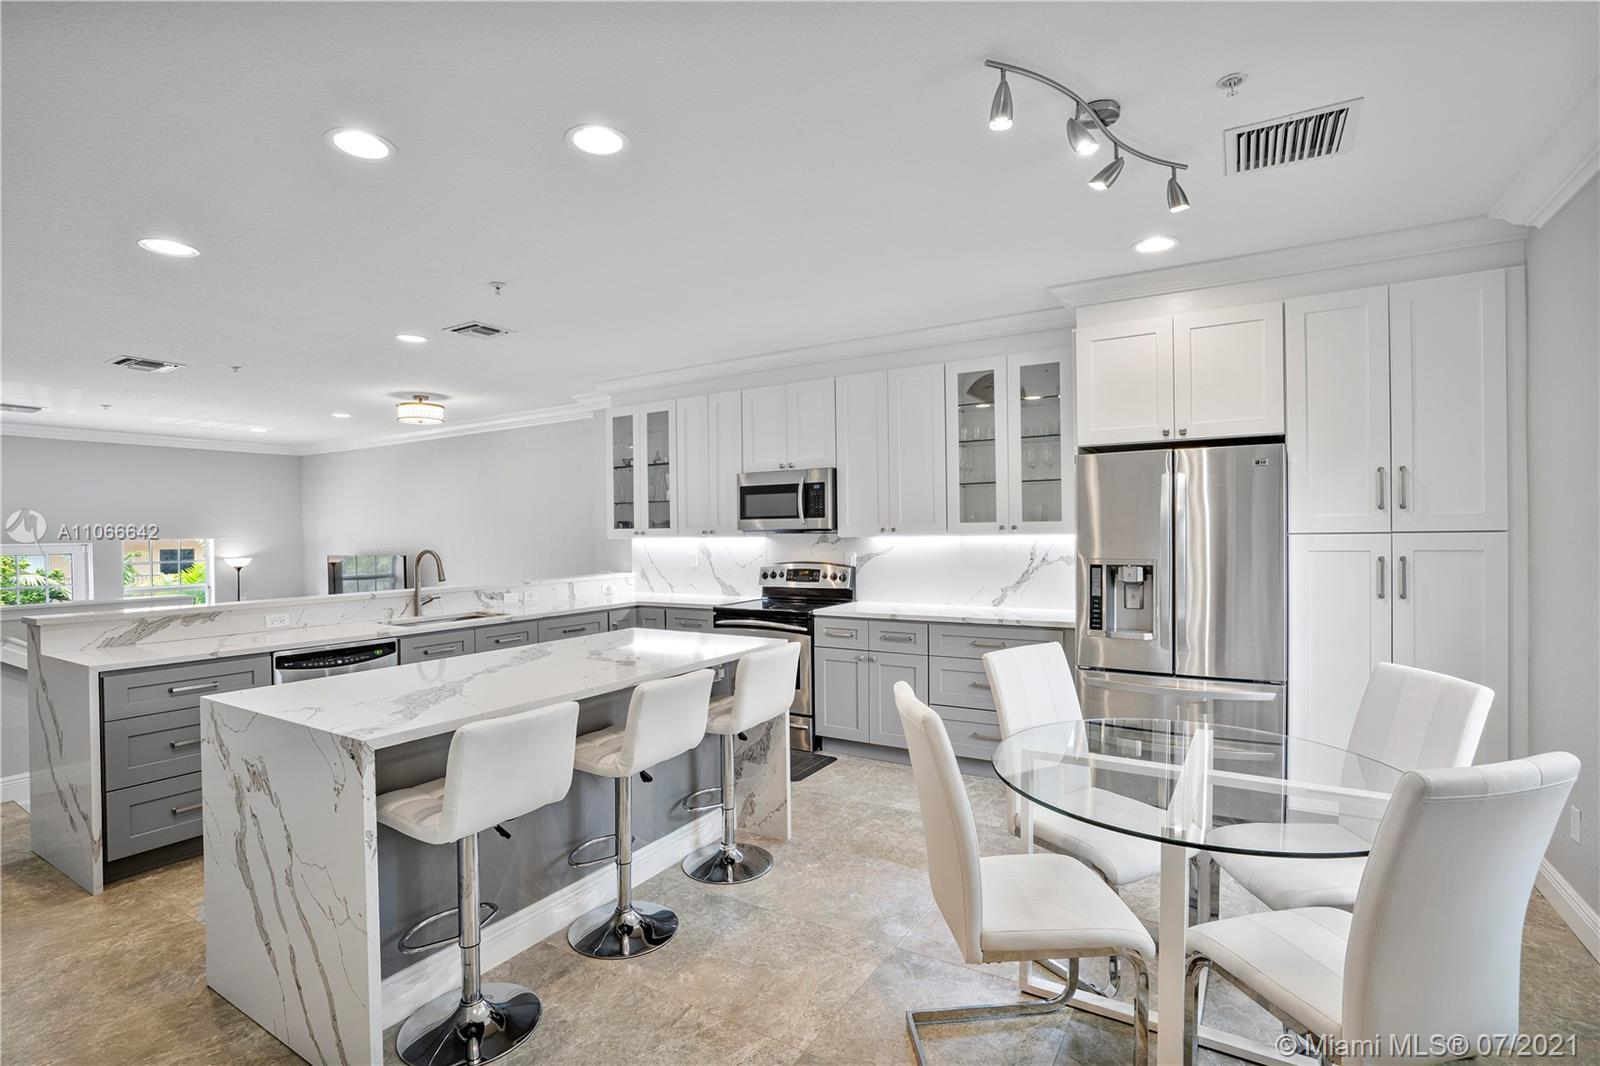 Beautifully Remodeled 4-Story Townhome In The Highest Point Of Wilton Manors W/Views Of Downtown For